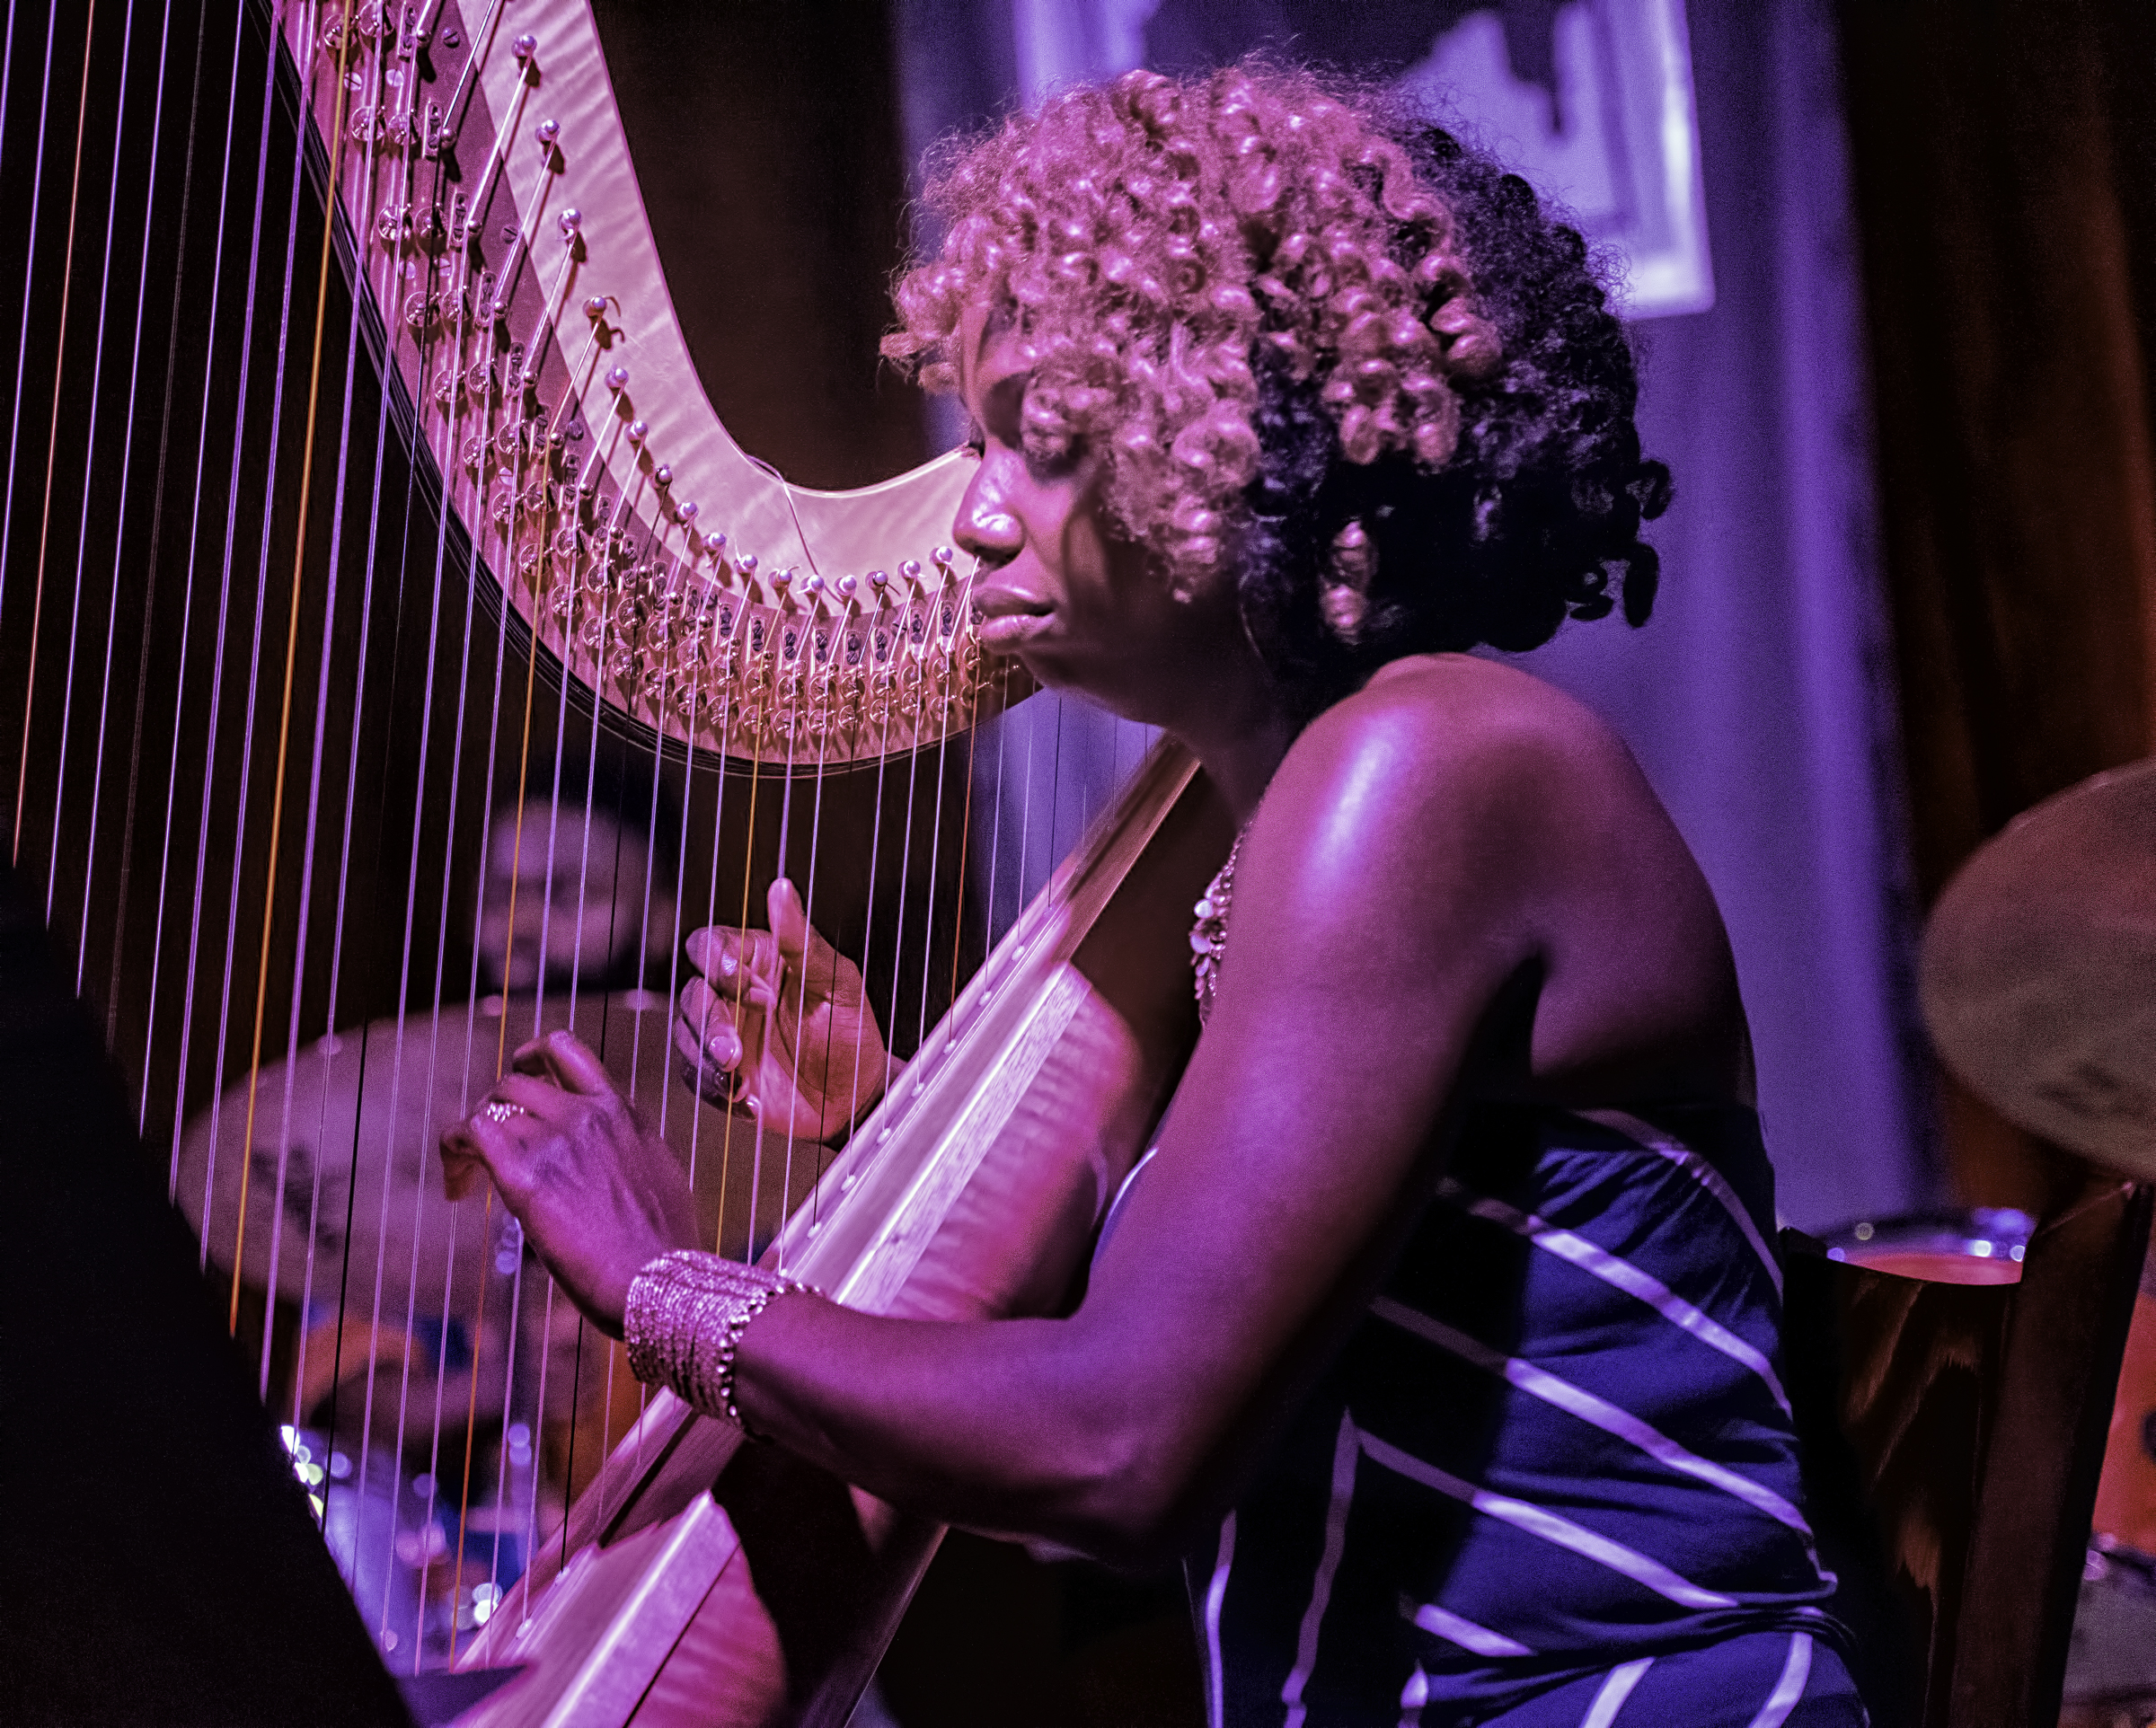 Brandee Younger with Ravi Coltrane Presents Universal Consciousness: Melodic Meditations of Alice Coltrane at the Jazz Gallery